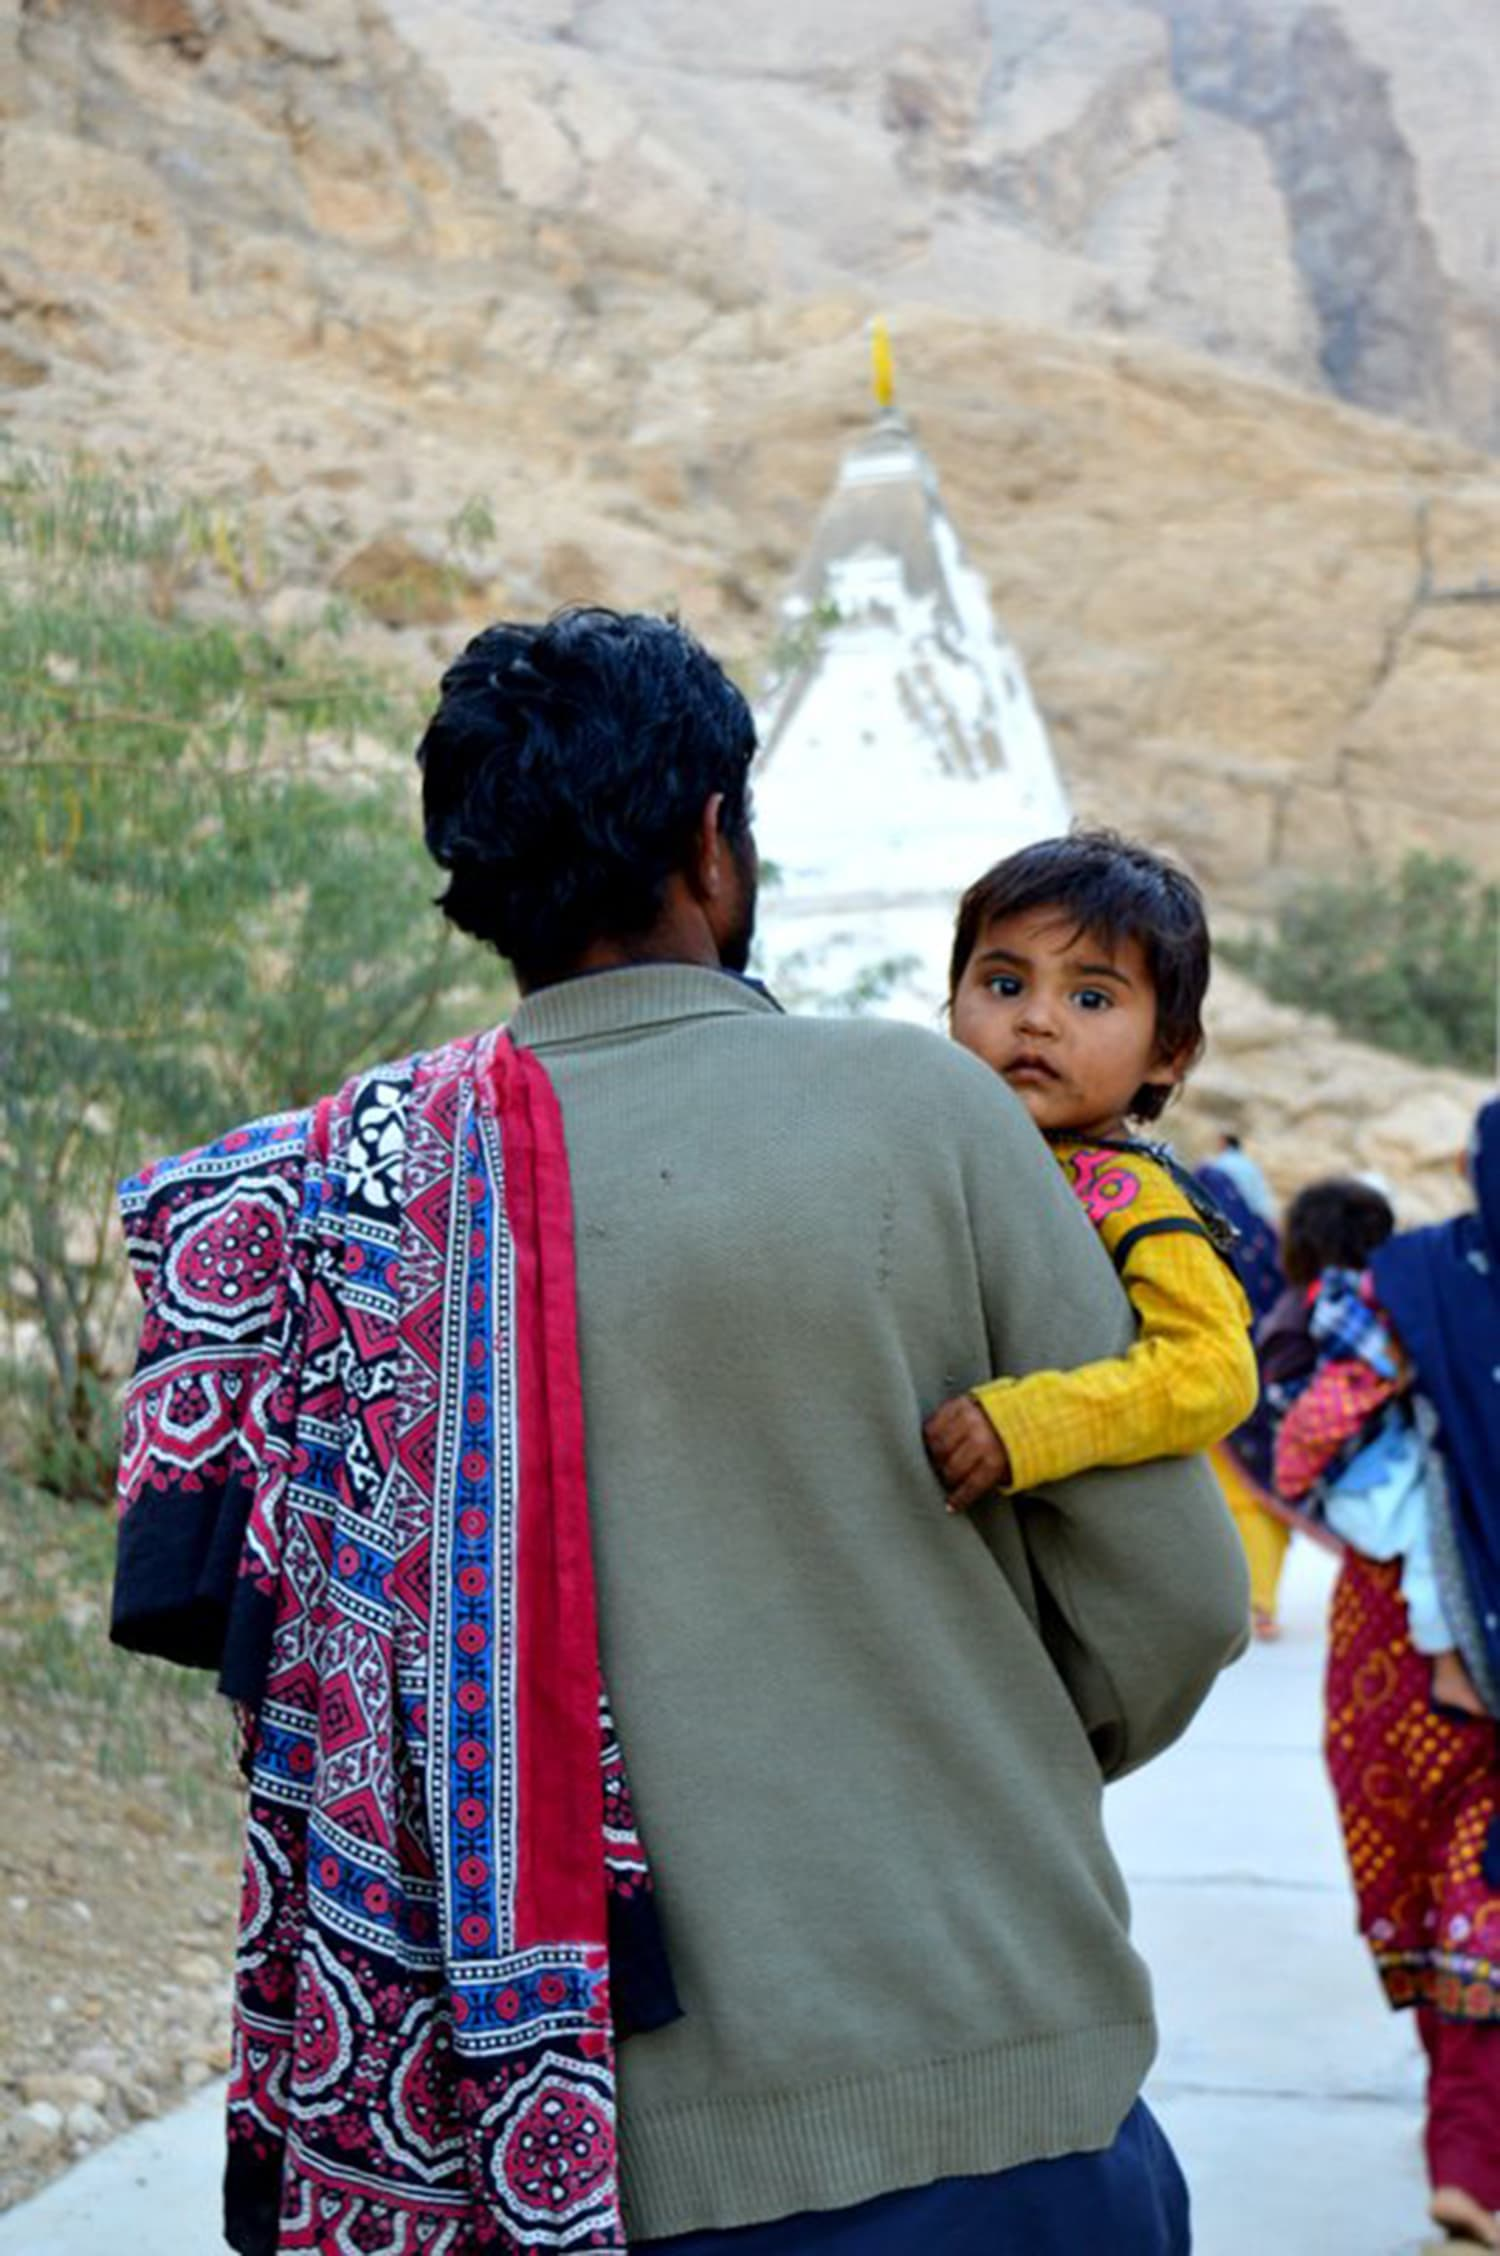 A Balochi man walking to the temple with his child.